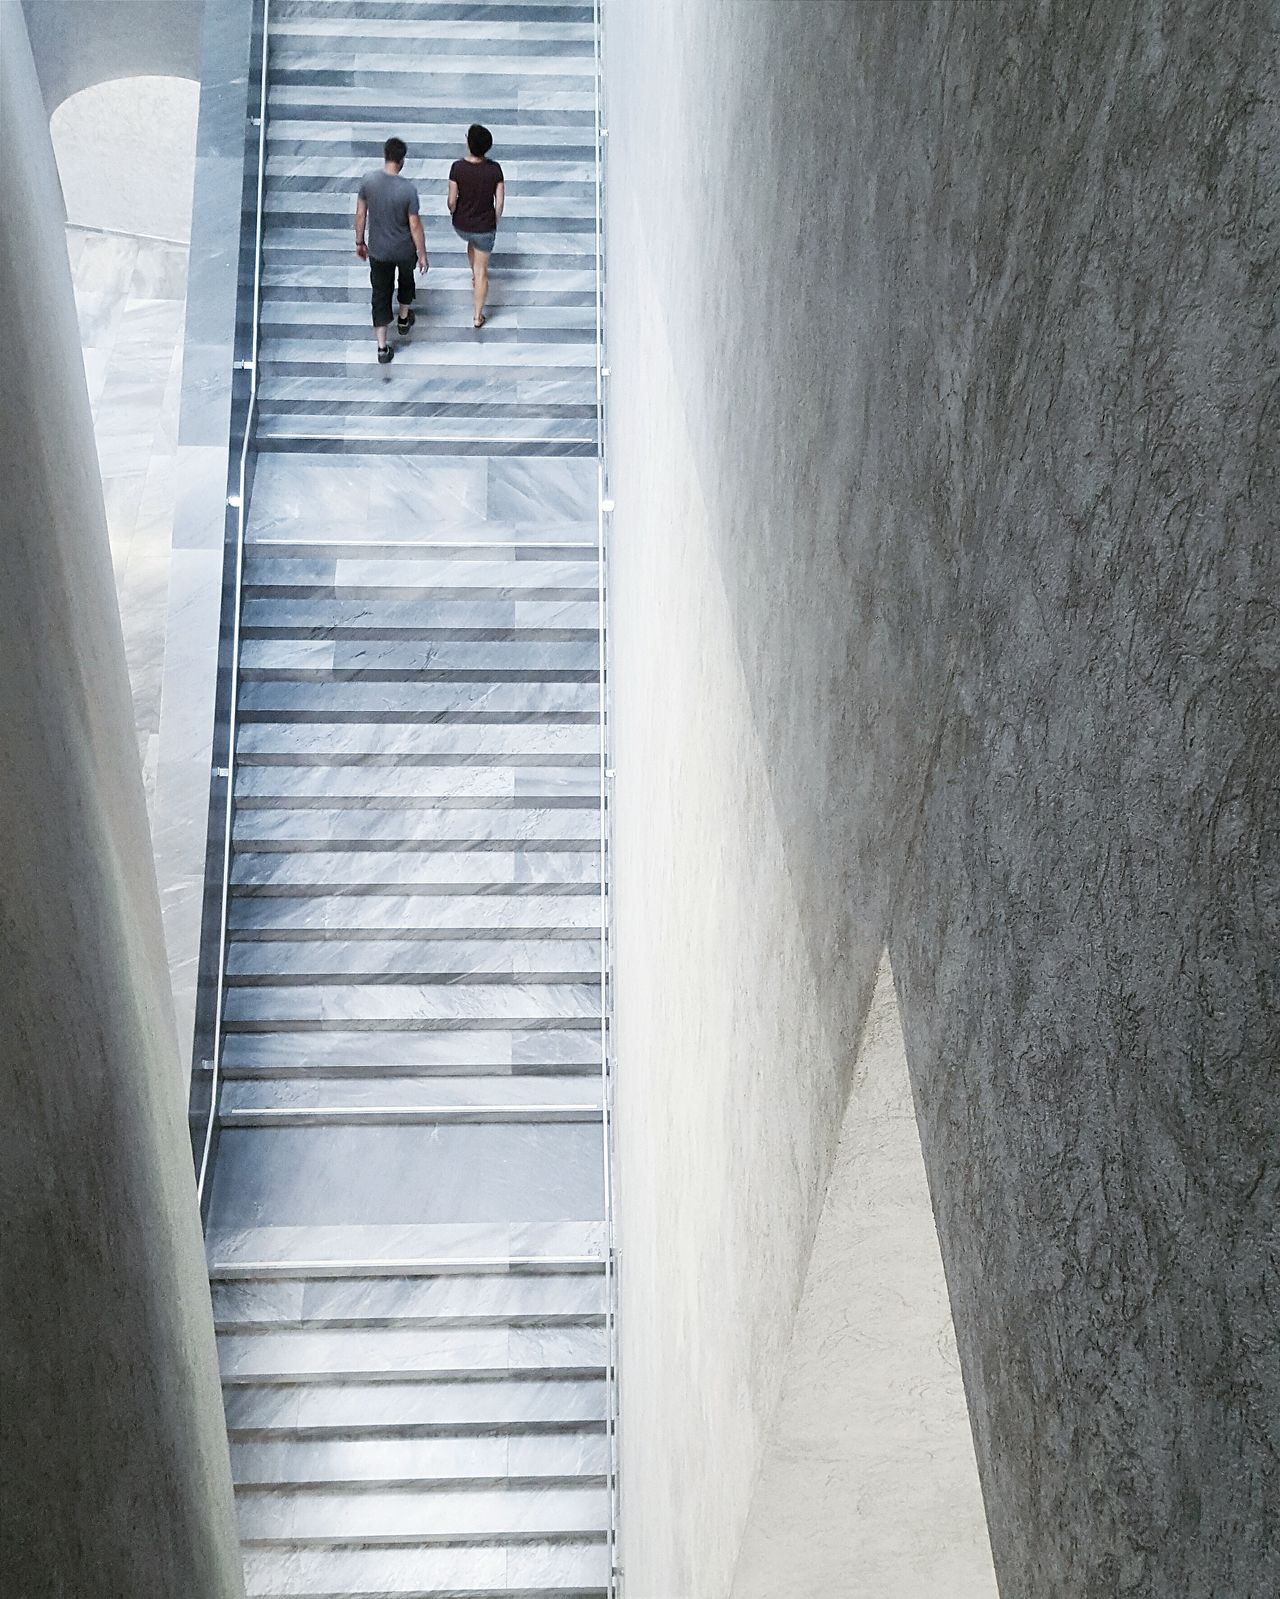 High angle view of couple on staircase at kunstmuseum basel